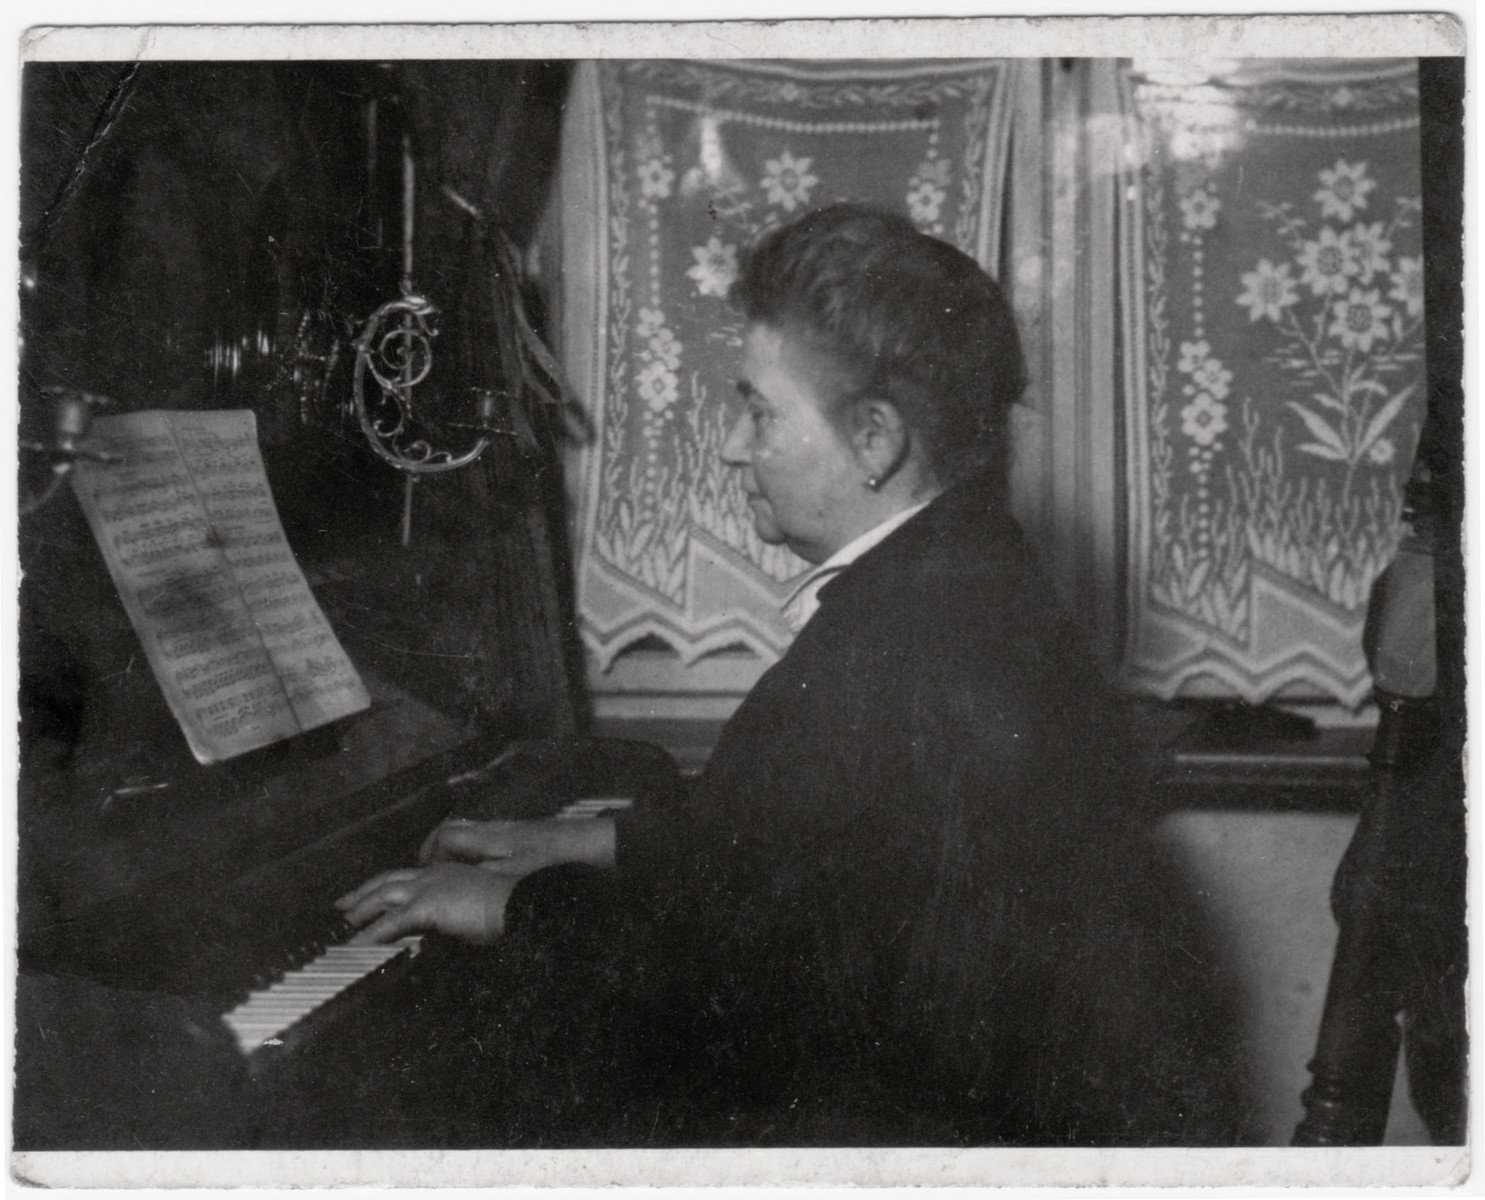 Henriette Bassfreund, the sister of Ismar Bassfreund, plays the piano in her home in Berlin.